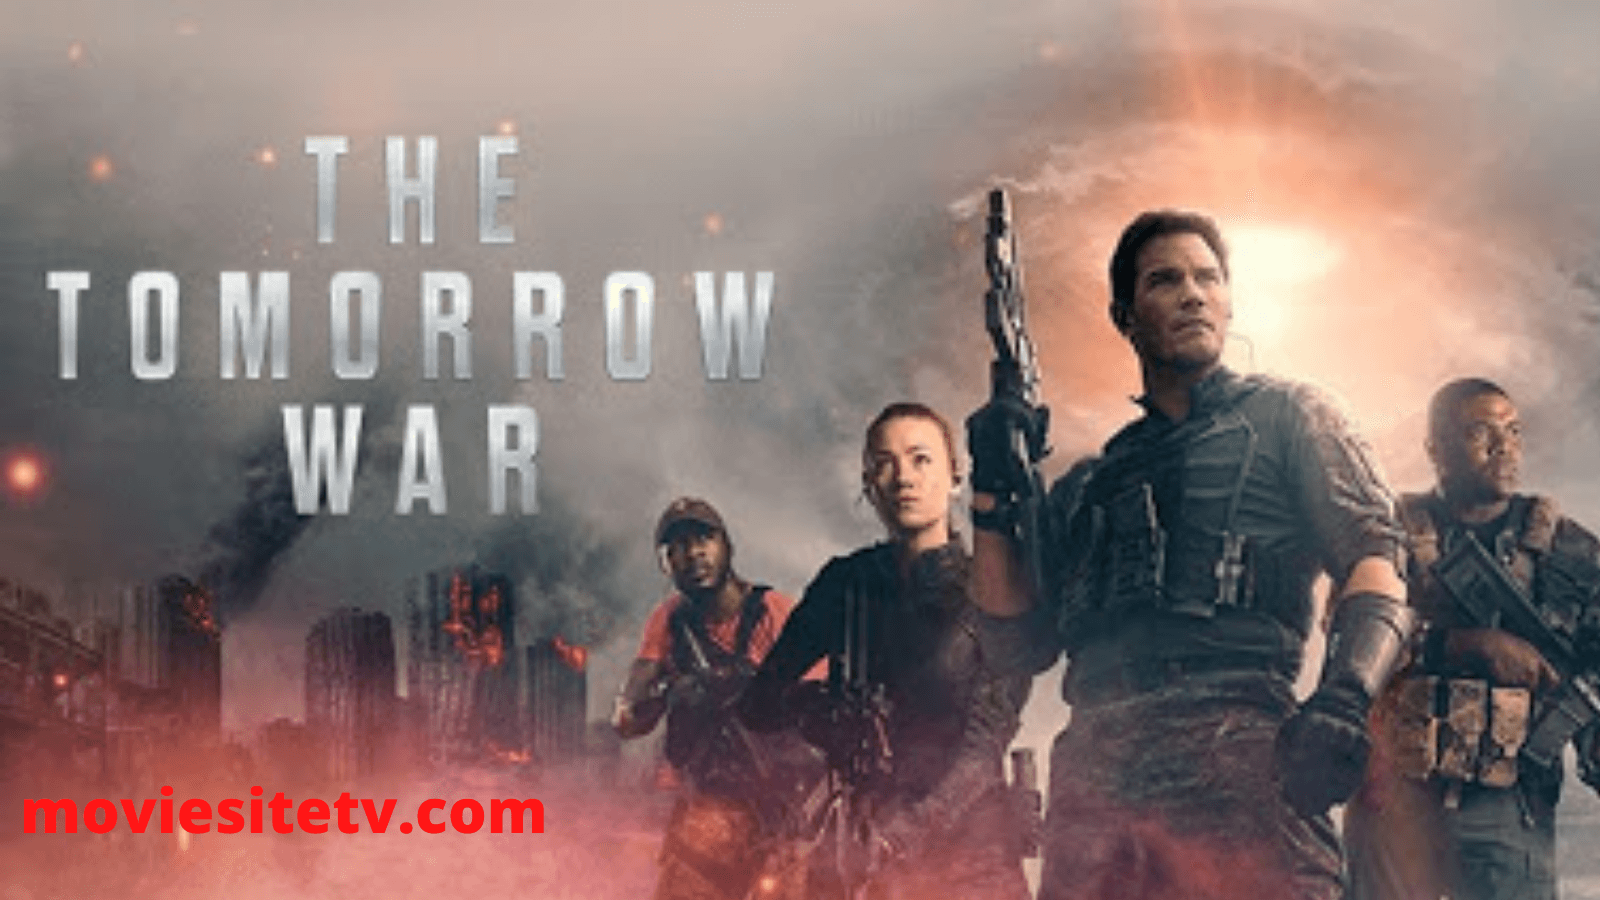 the tomorrow war download